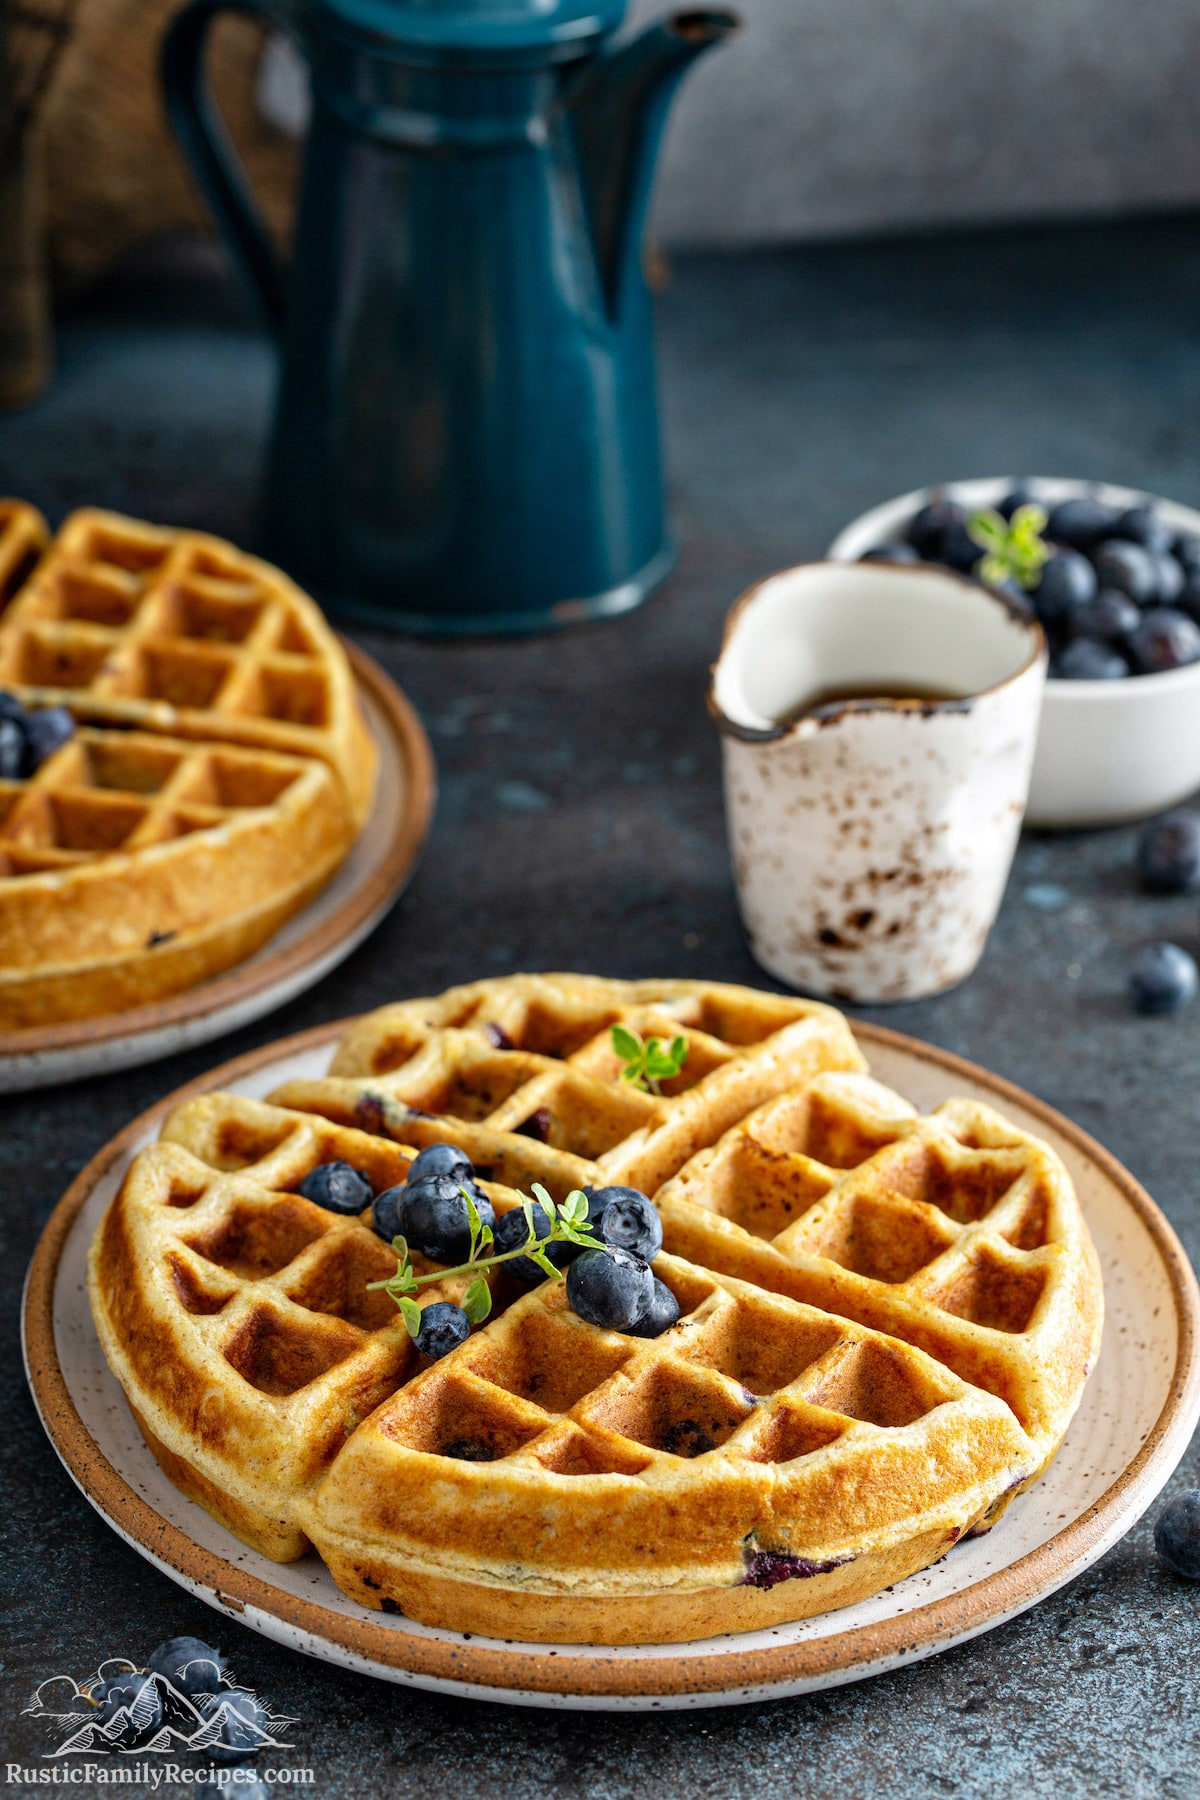 A blueberry waffle topped with a few blueberries.